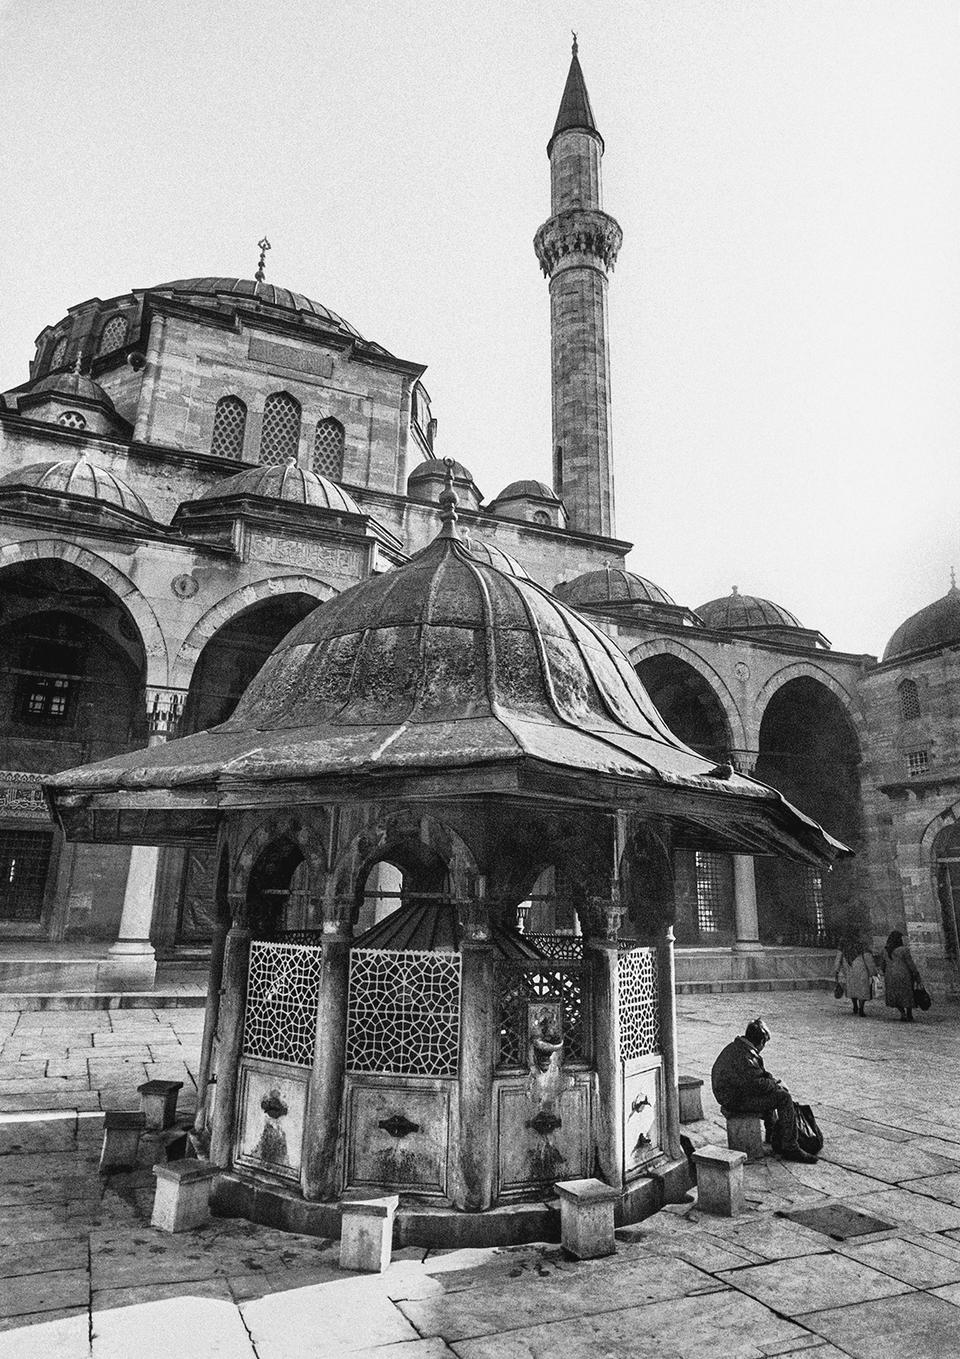 The courtyard and fountain of Sokullu Mehmet Pasha Mosque, Kadirga, 1988.